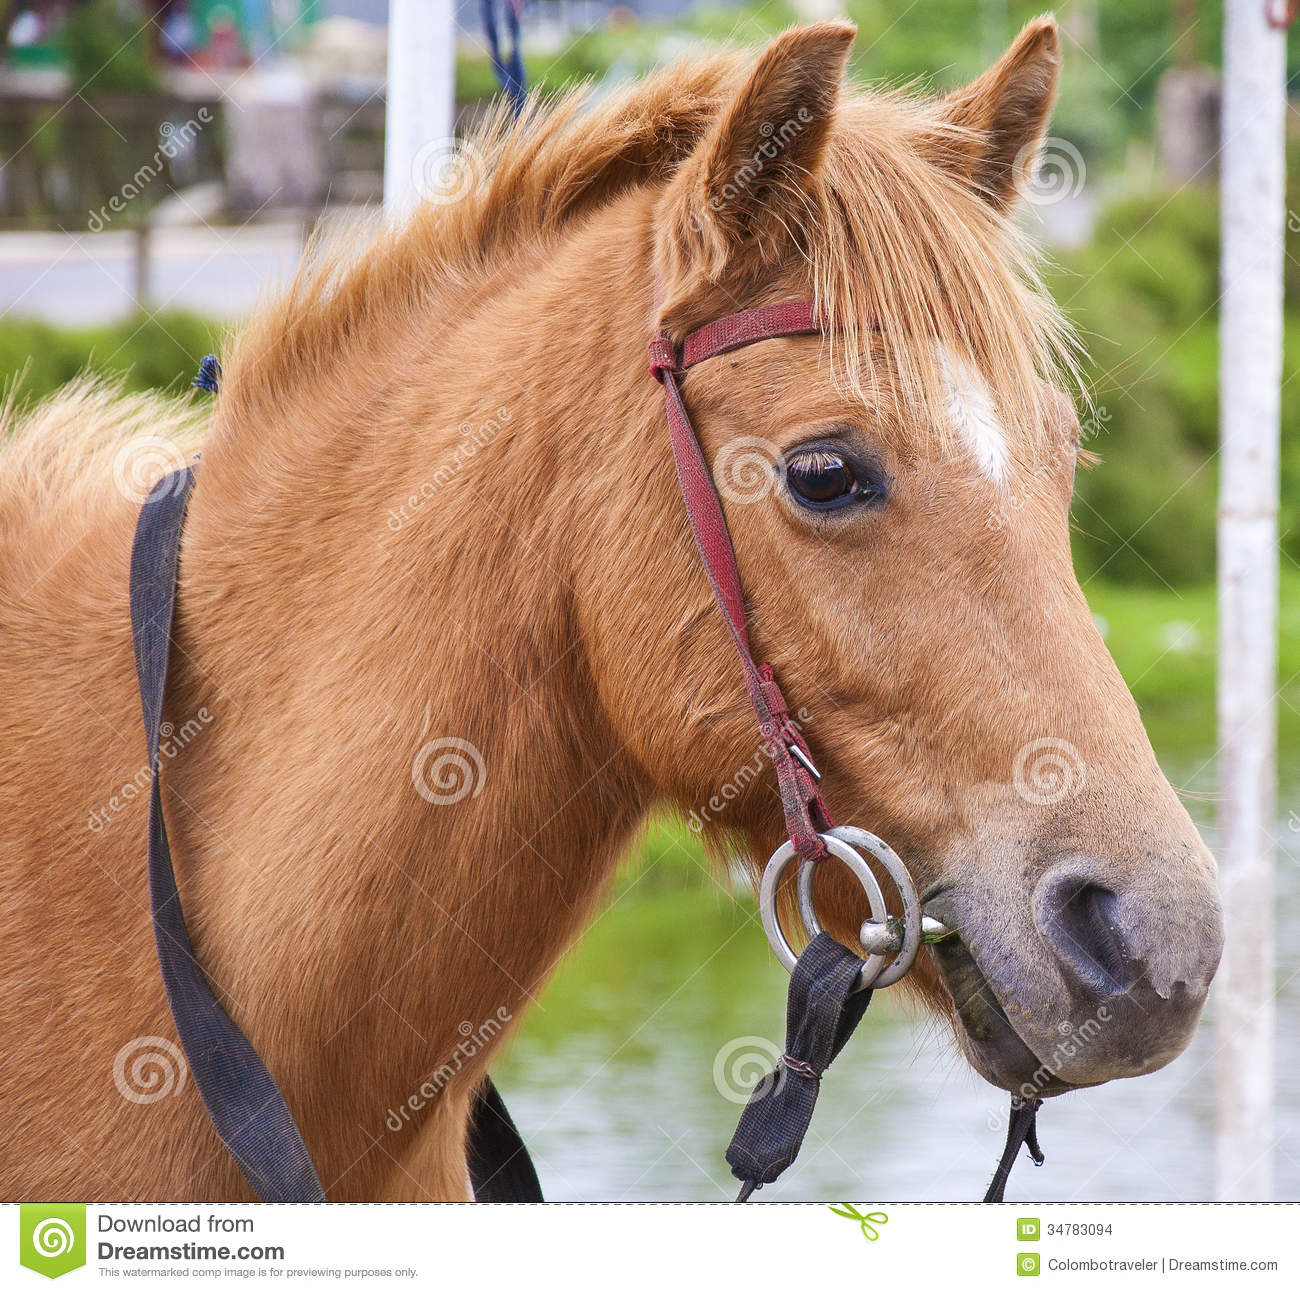 Horse stock photo Image of animal outdoor horse